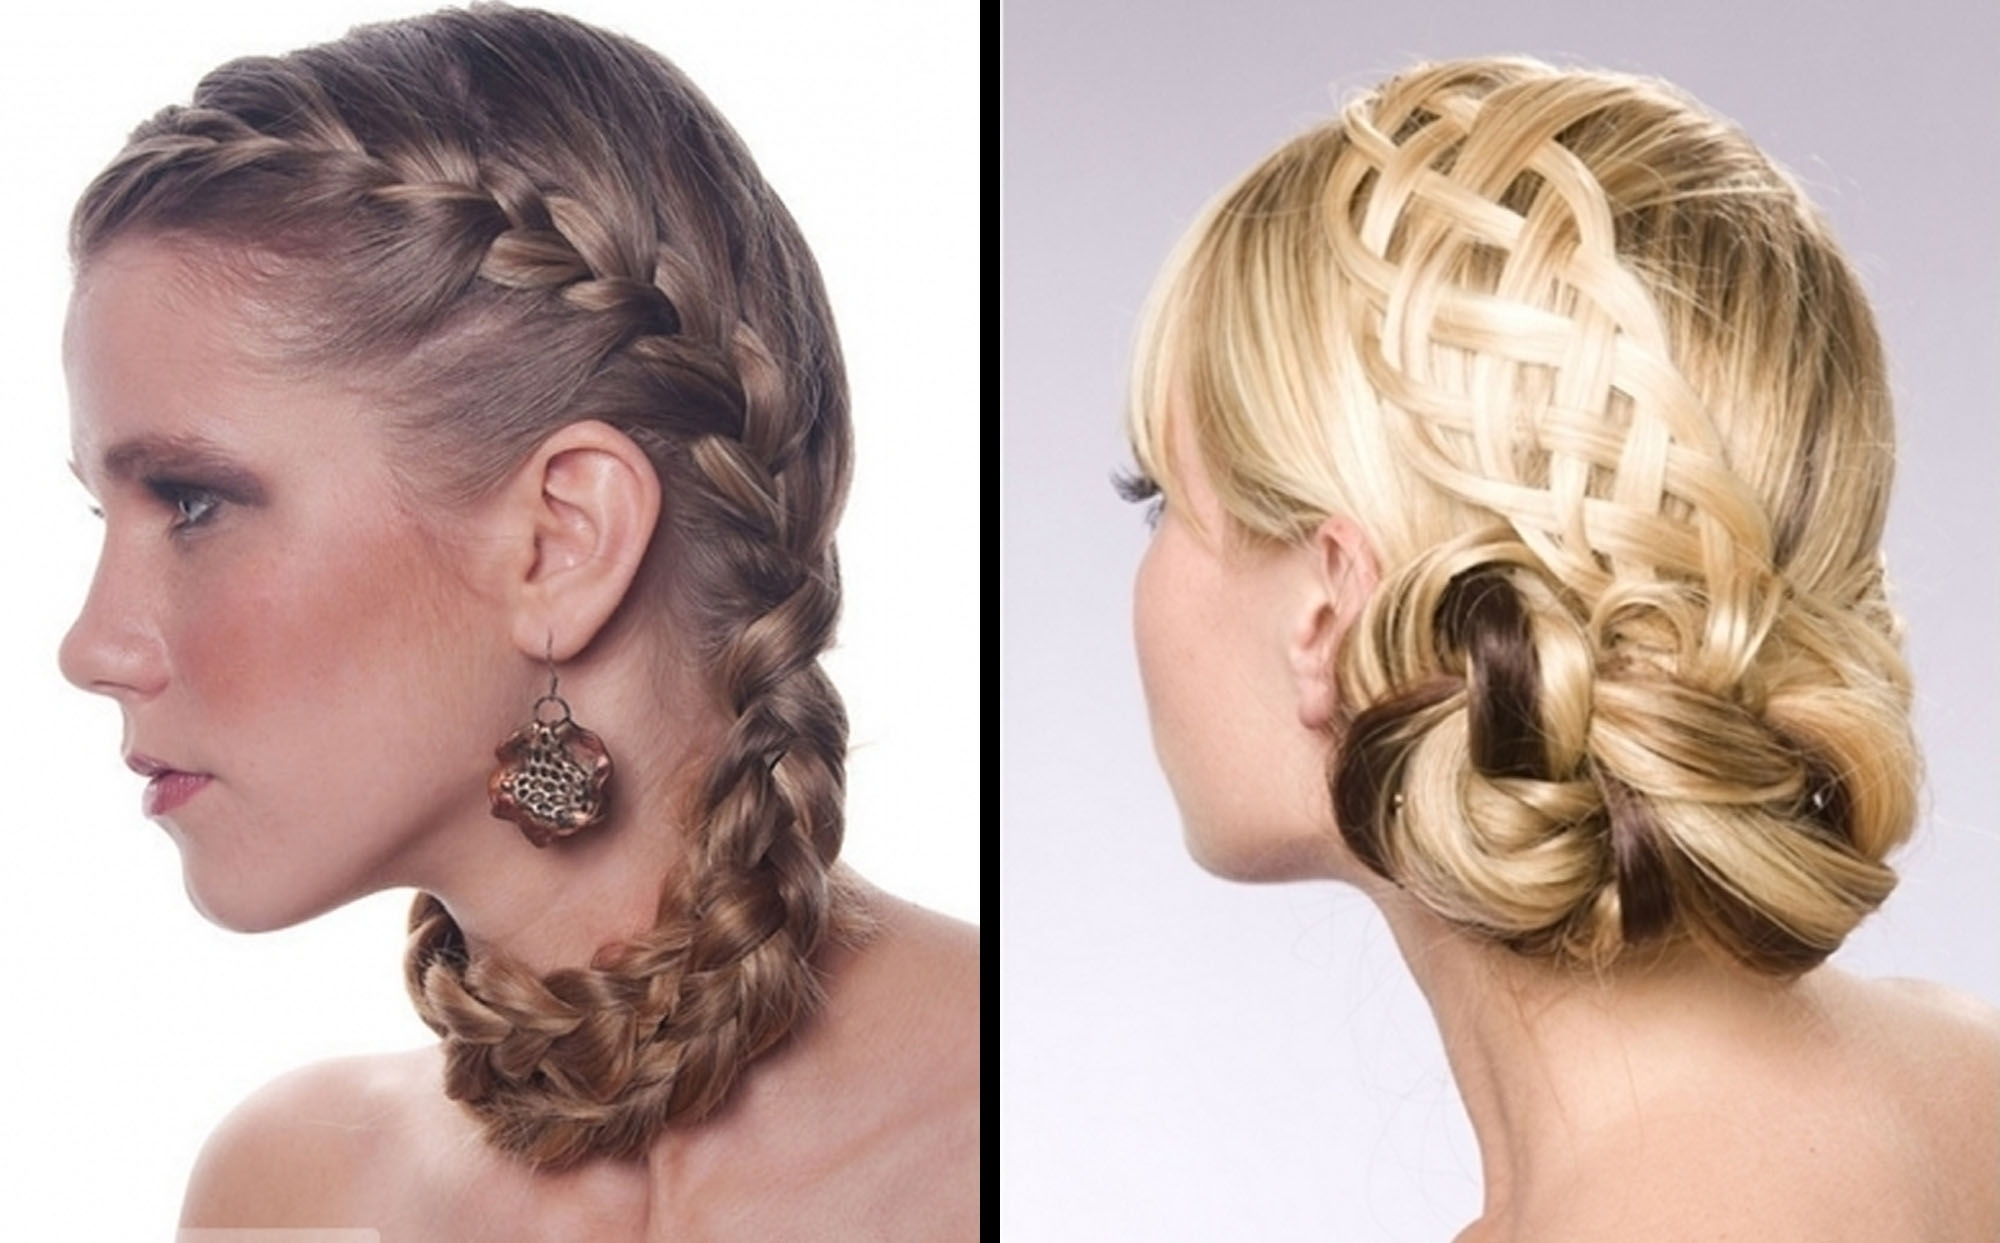 Hairstyles Updo Chic Hair Of Braided Updo Hairstyles Hair Salon As Inside Chic Updos For Long Hair (View 11 of 15)